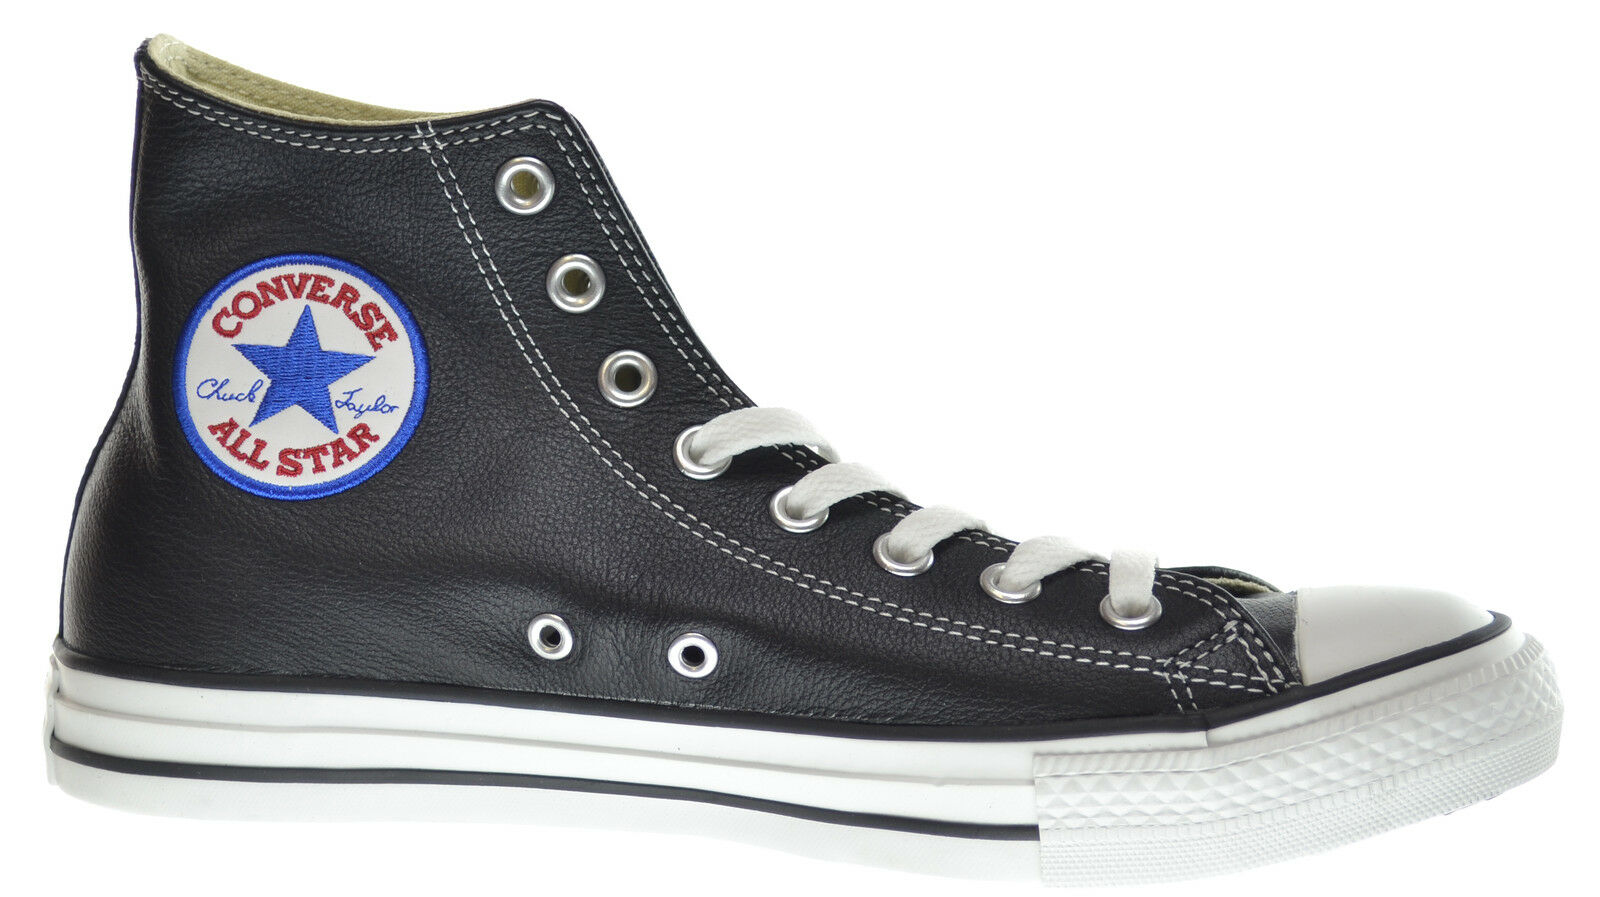 Converse Chuck Taylor All Star Hi Men's Leather Sneakers Black 1s581